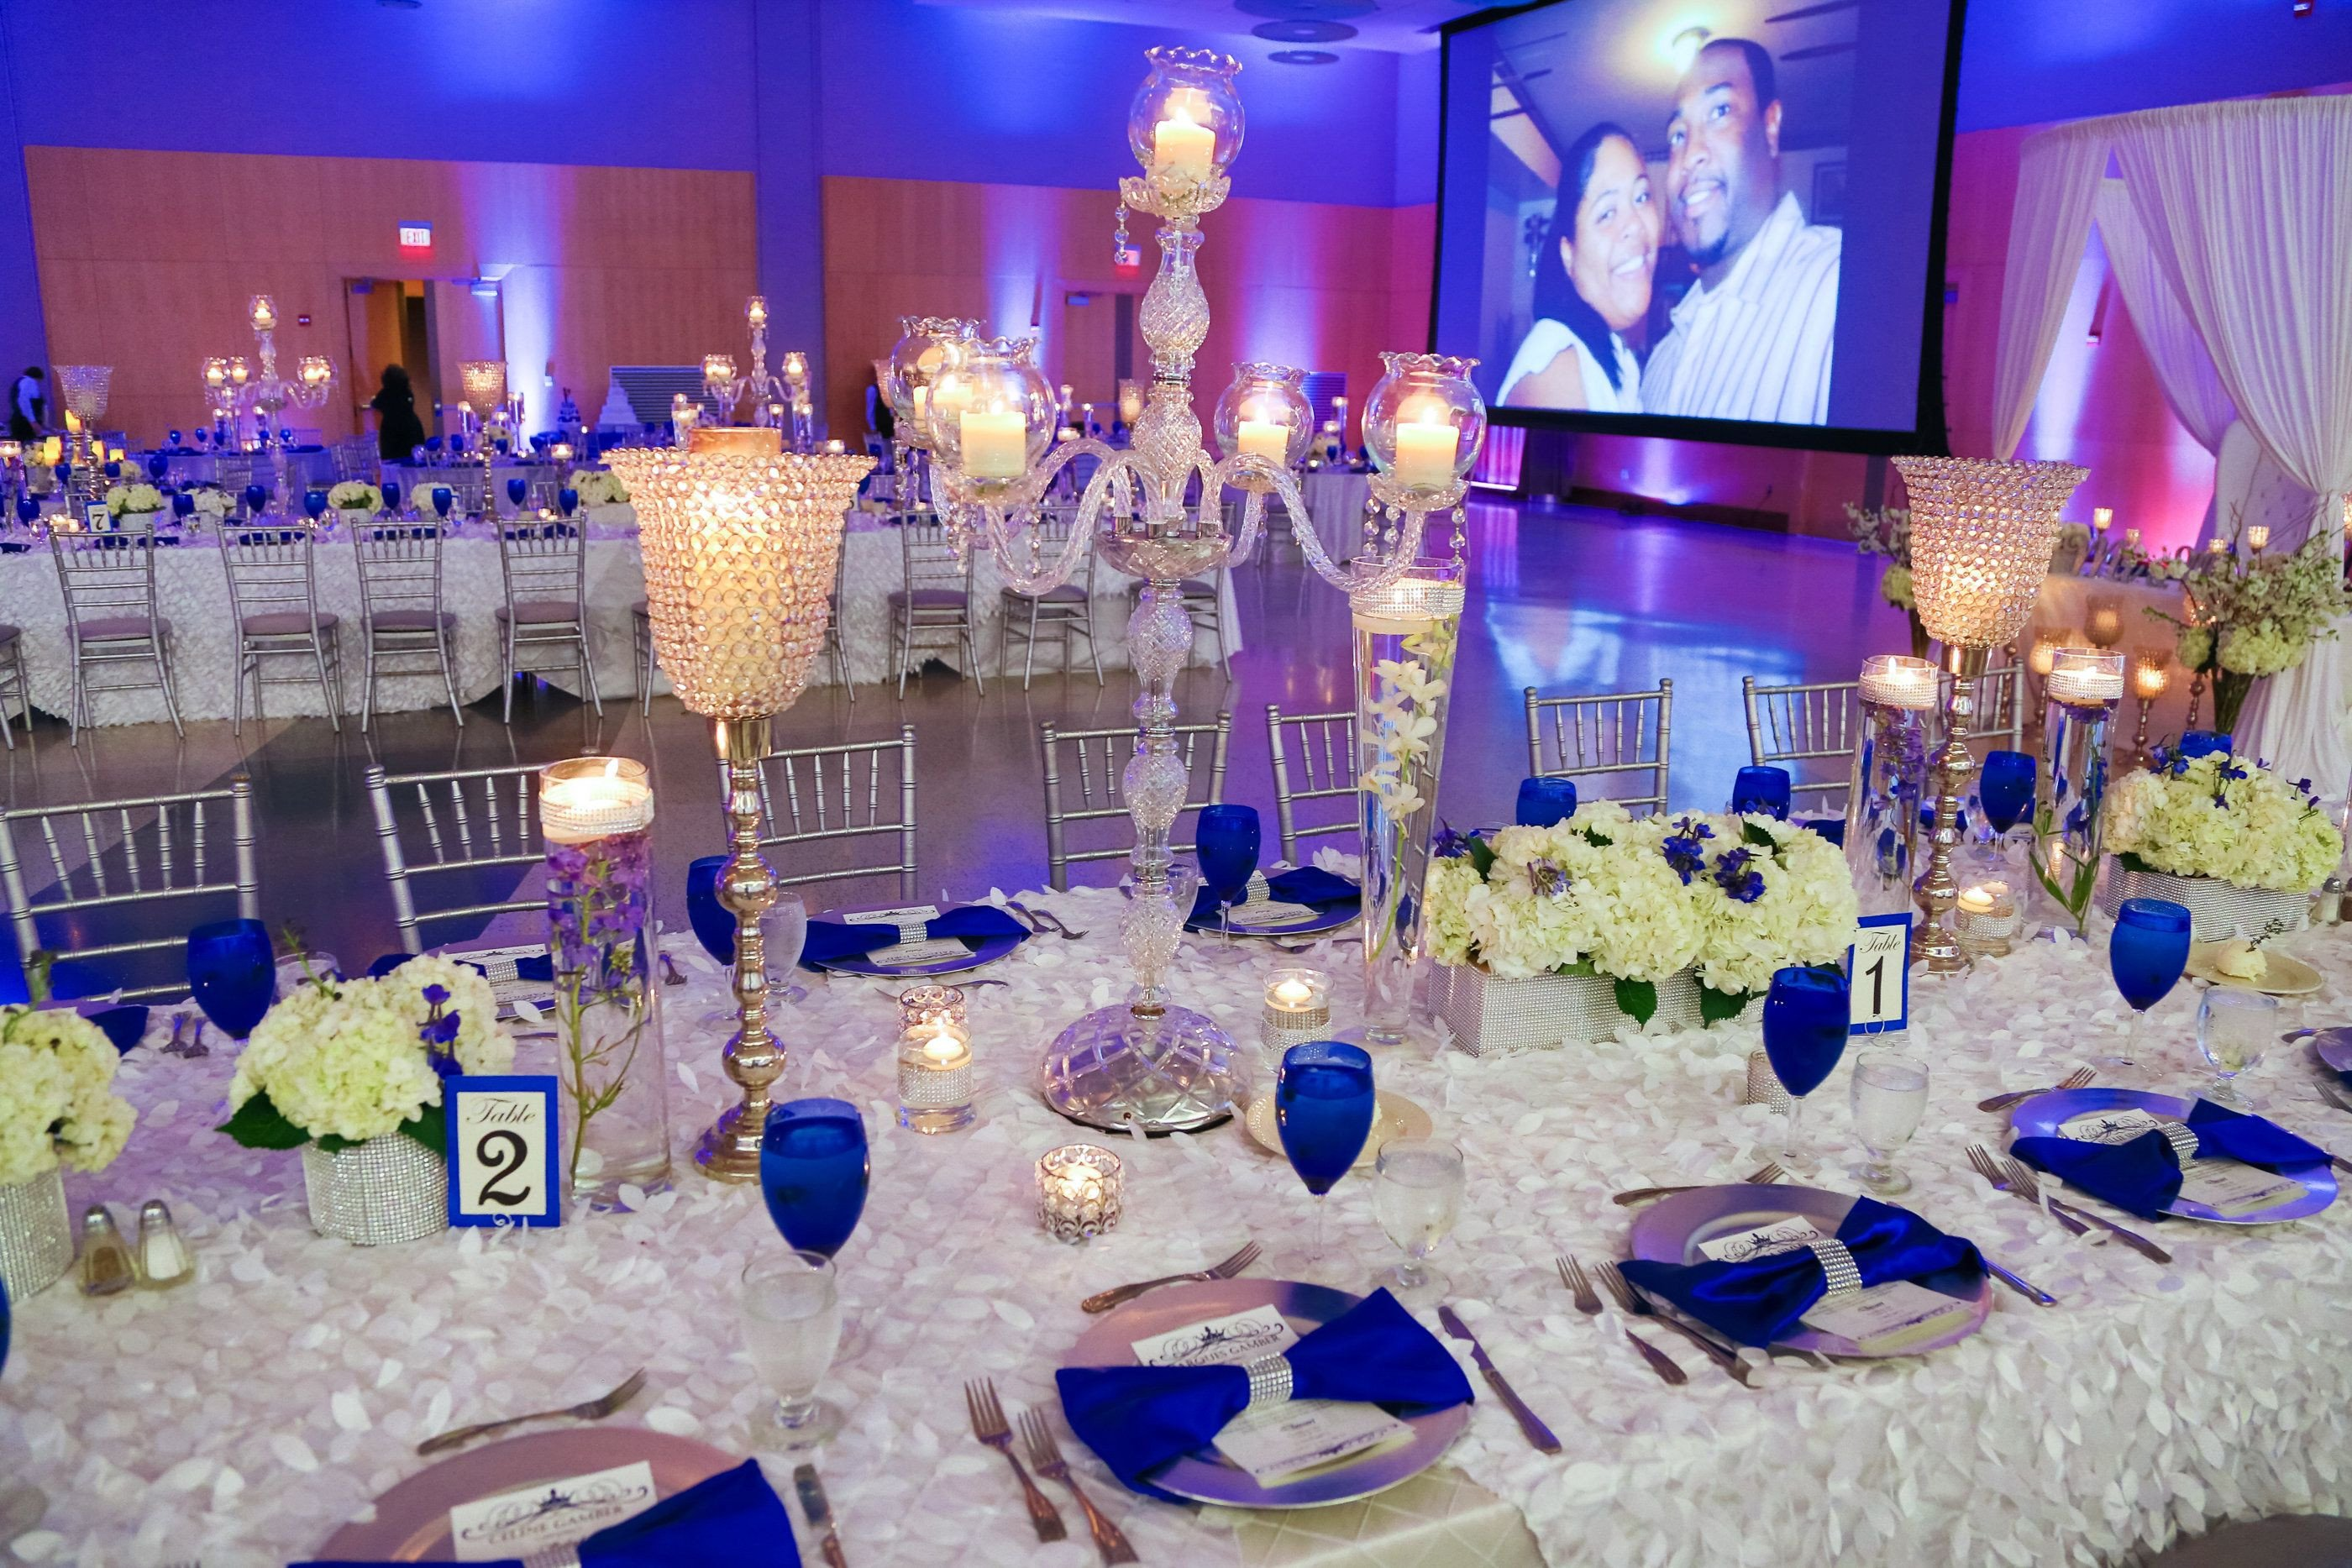 Blue and White Wedding Decor New Our Royal Blue and White Wedding Bridal Party Blue Wedding Reception Decor Candelabras